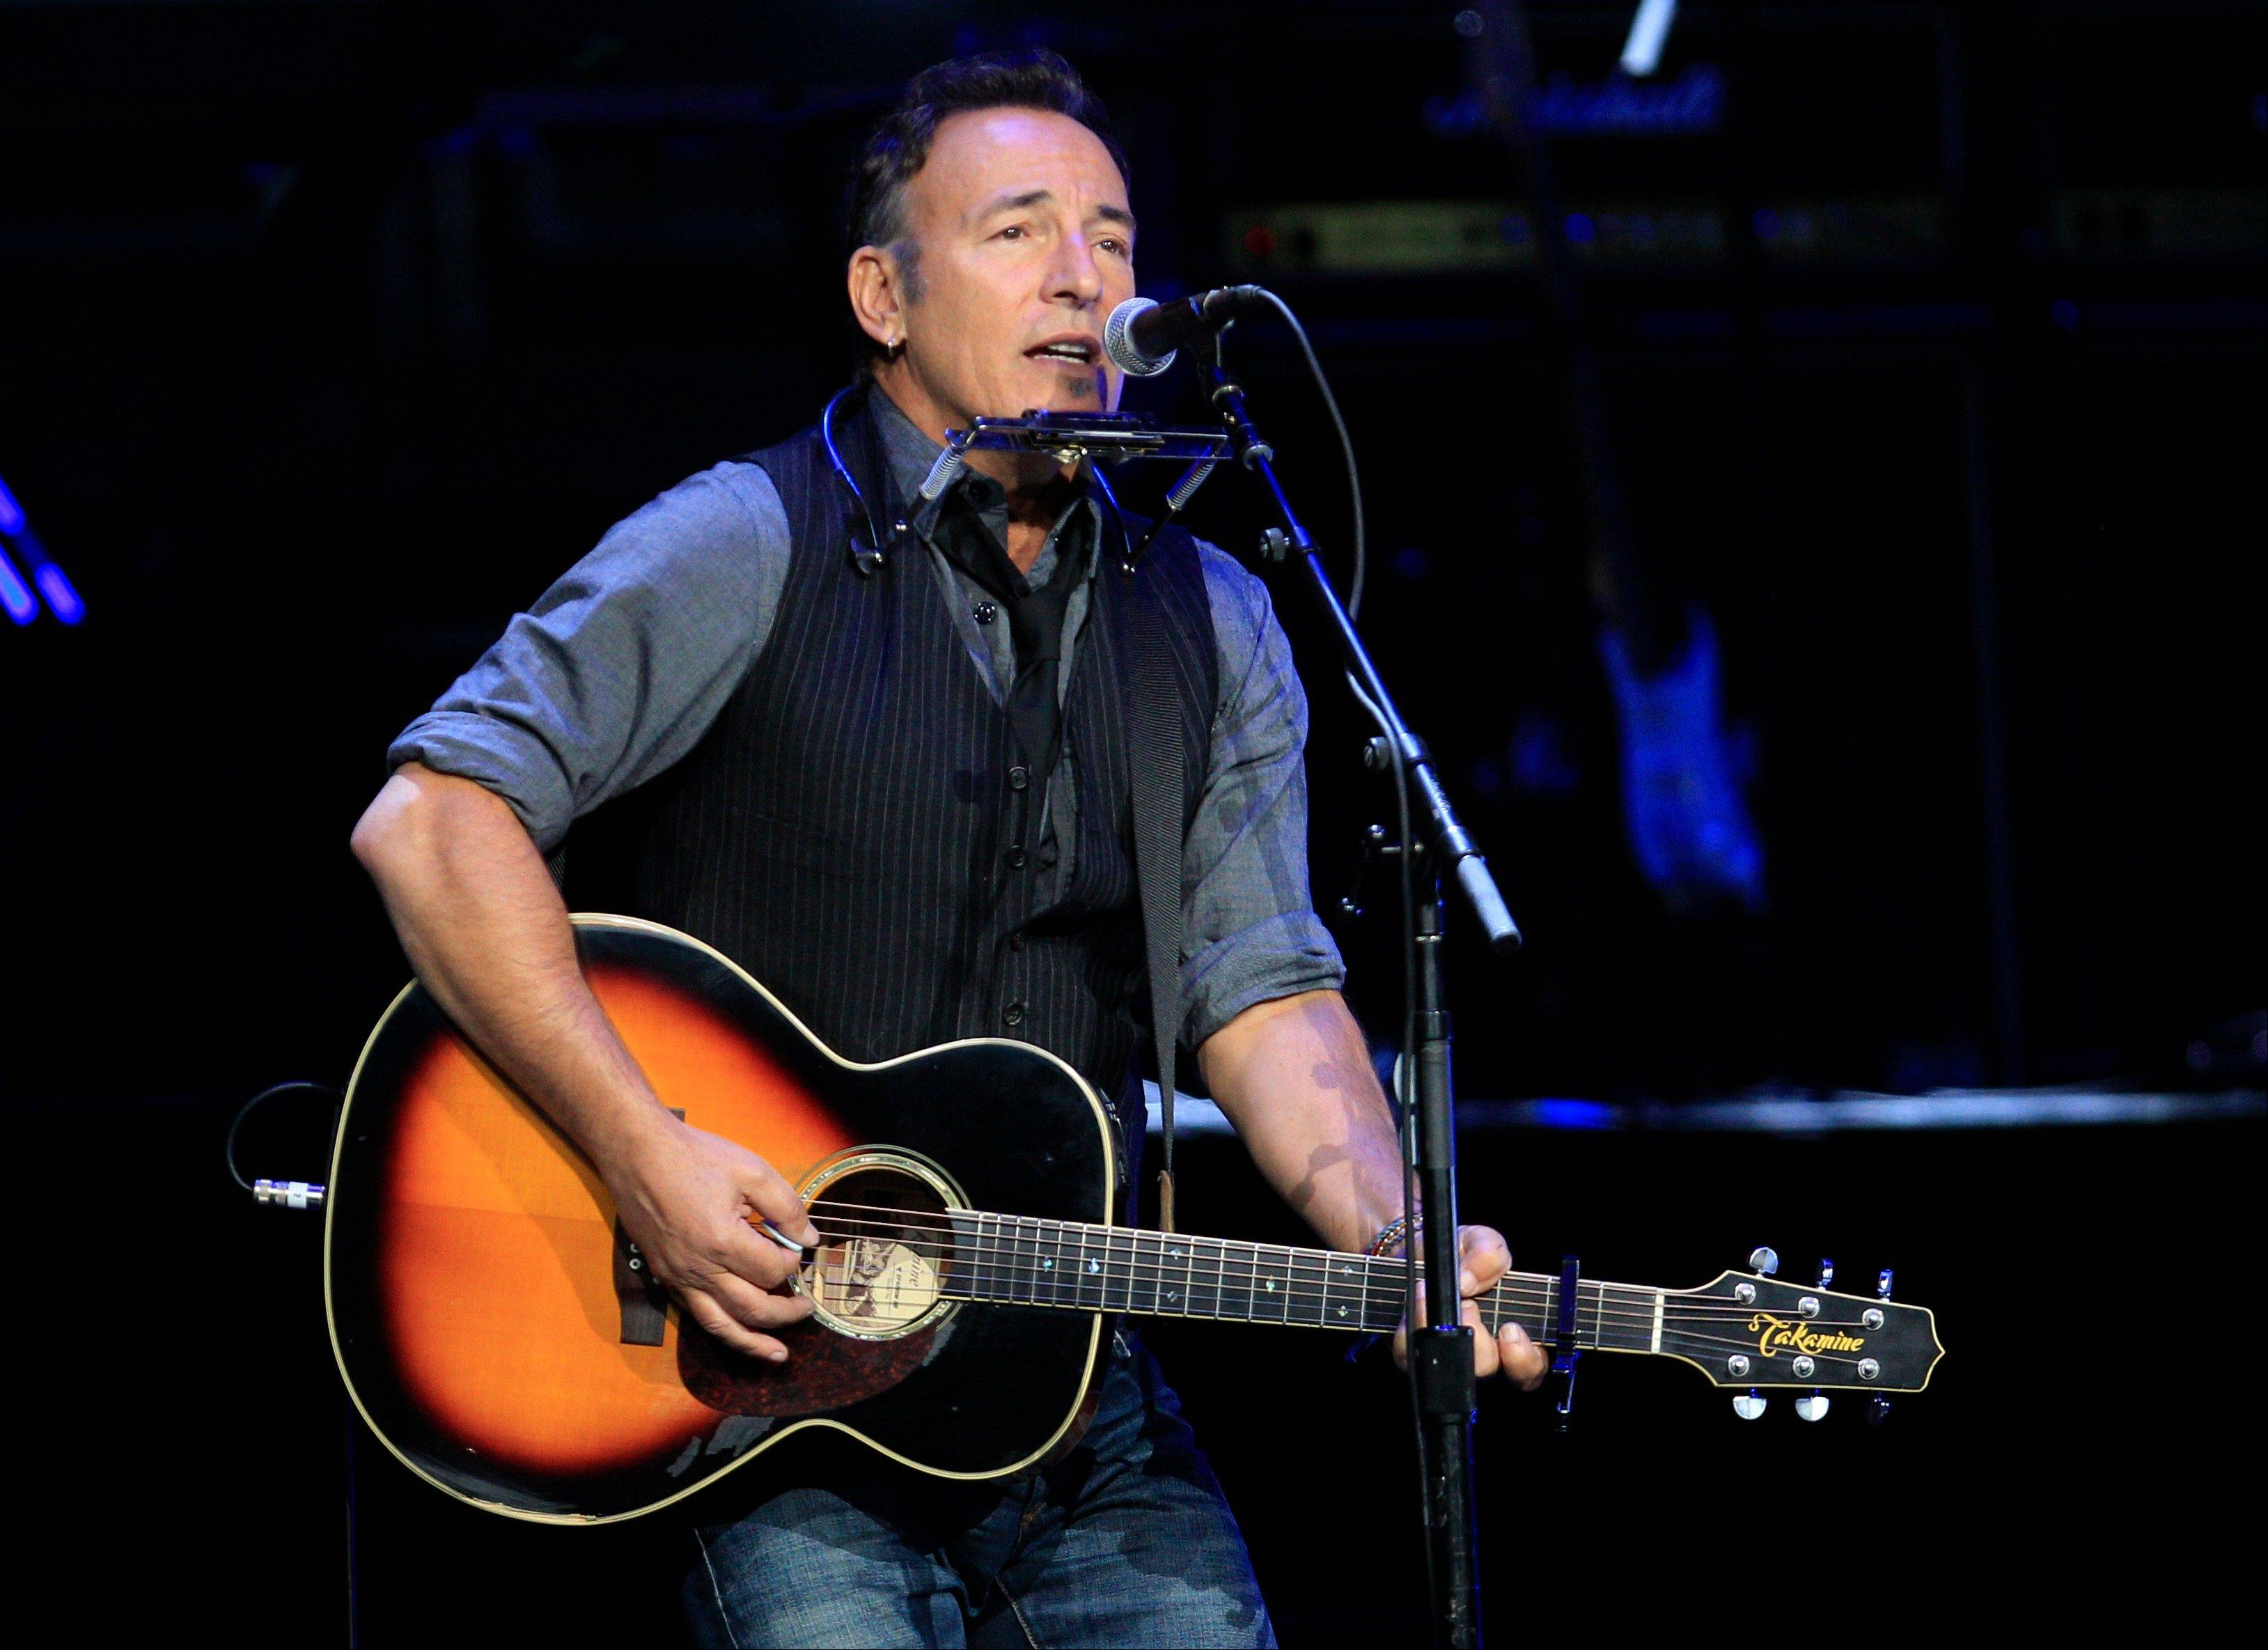 Singer Bruce Springsteen performs at a campaign event for President Barack Obama at Nationwide Arena Monday in Columbus, Ohio.